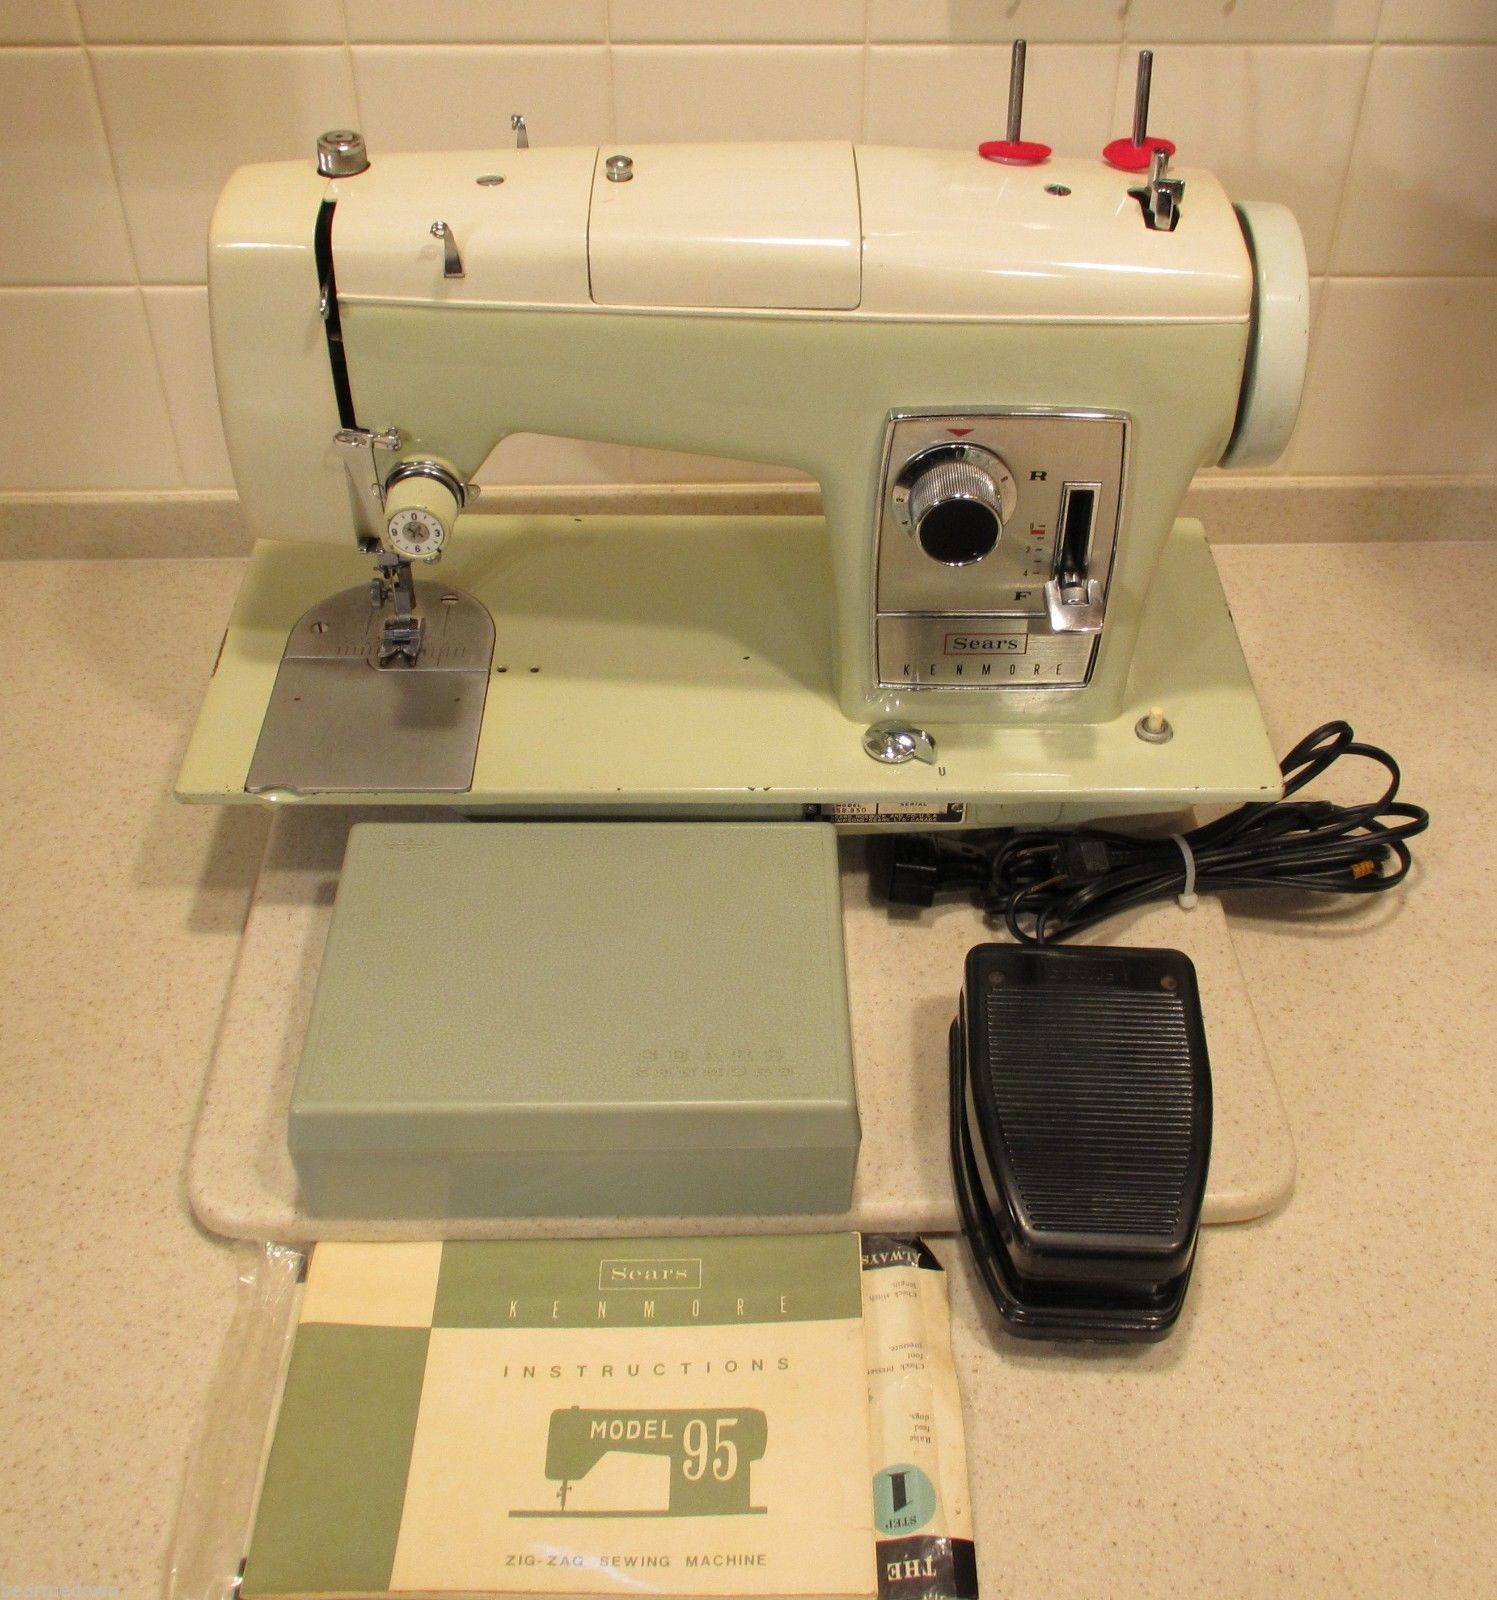 Vintage Sewing Machines Sears Kenmore 158950 Machine Bernina 830 Threading Diagram The Model Is Officially 95 According To Manual Multiple Models Look Almost Identical This